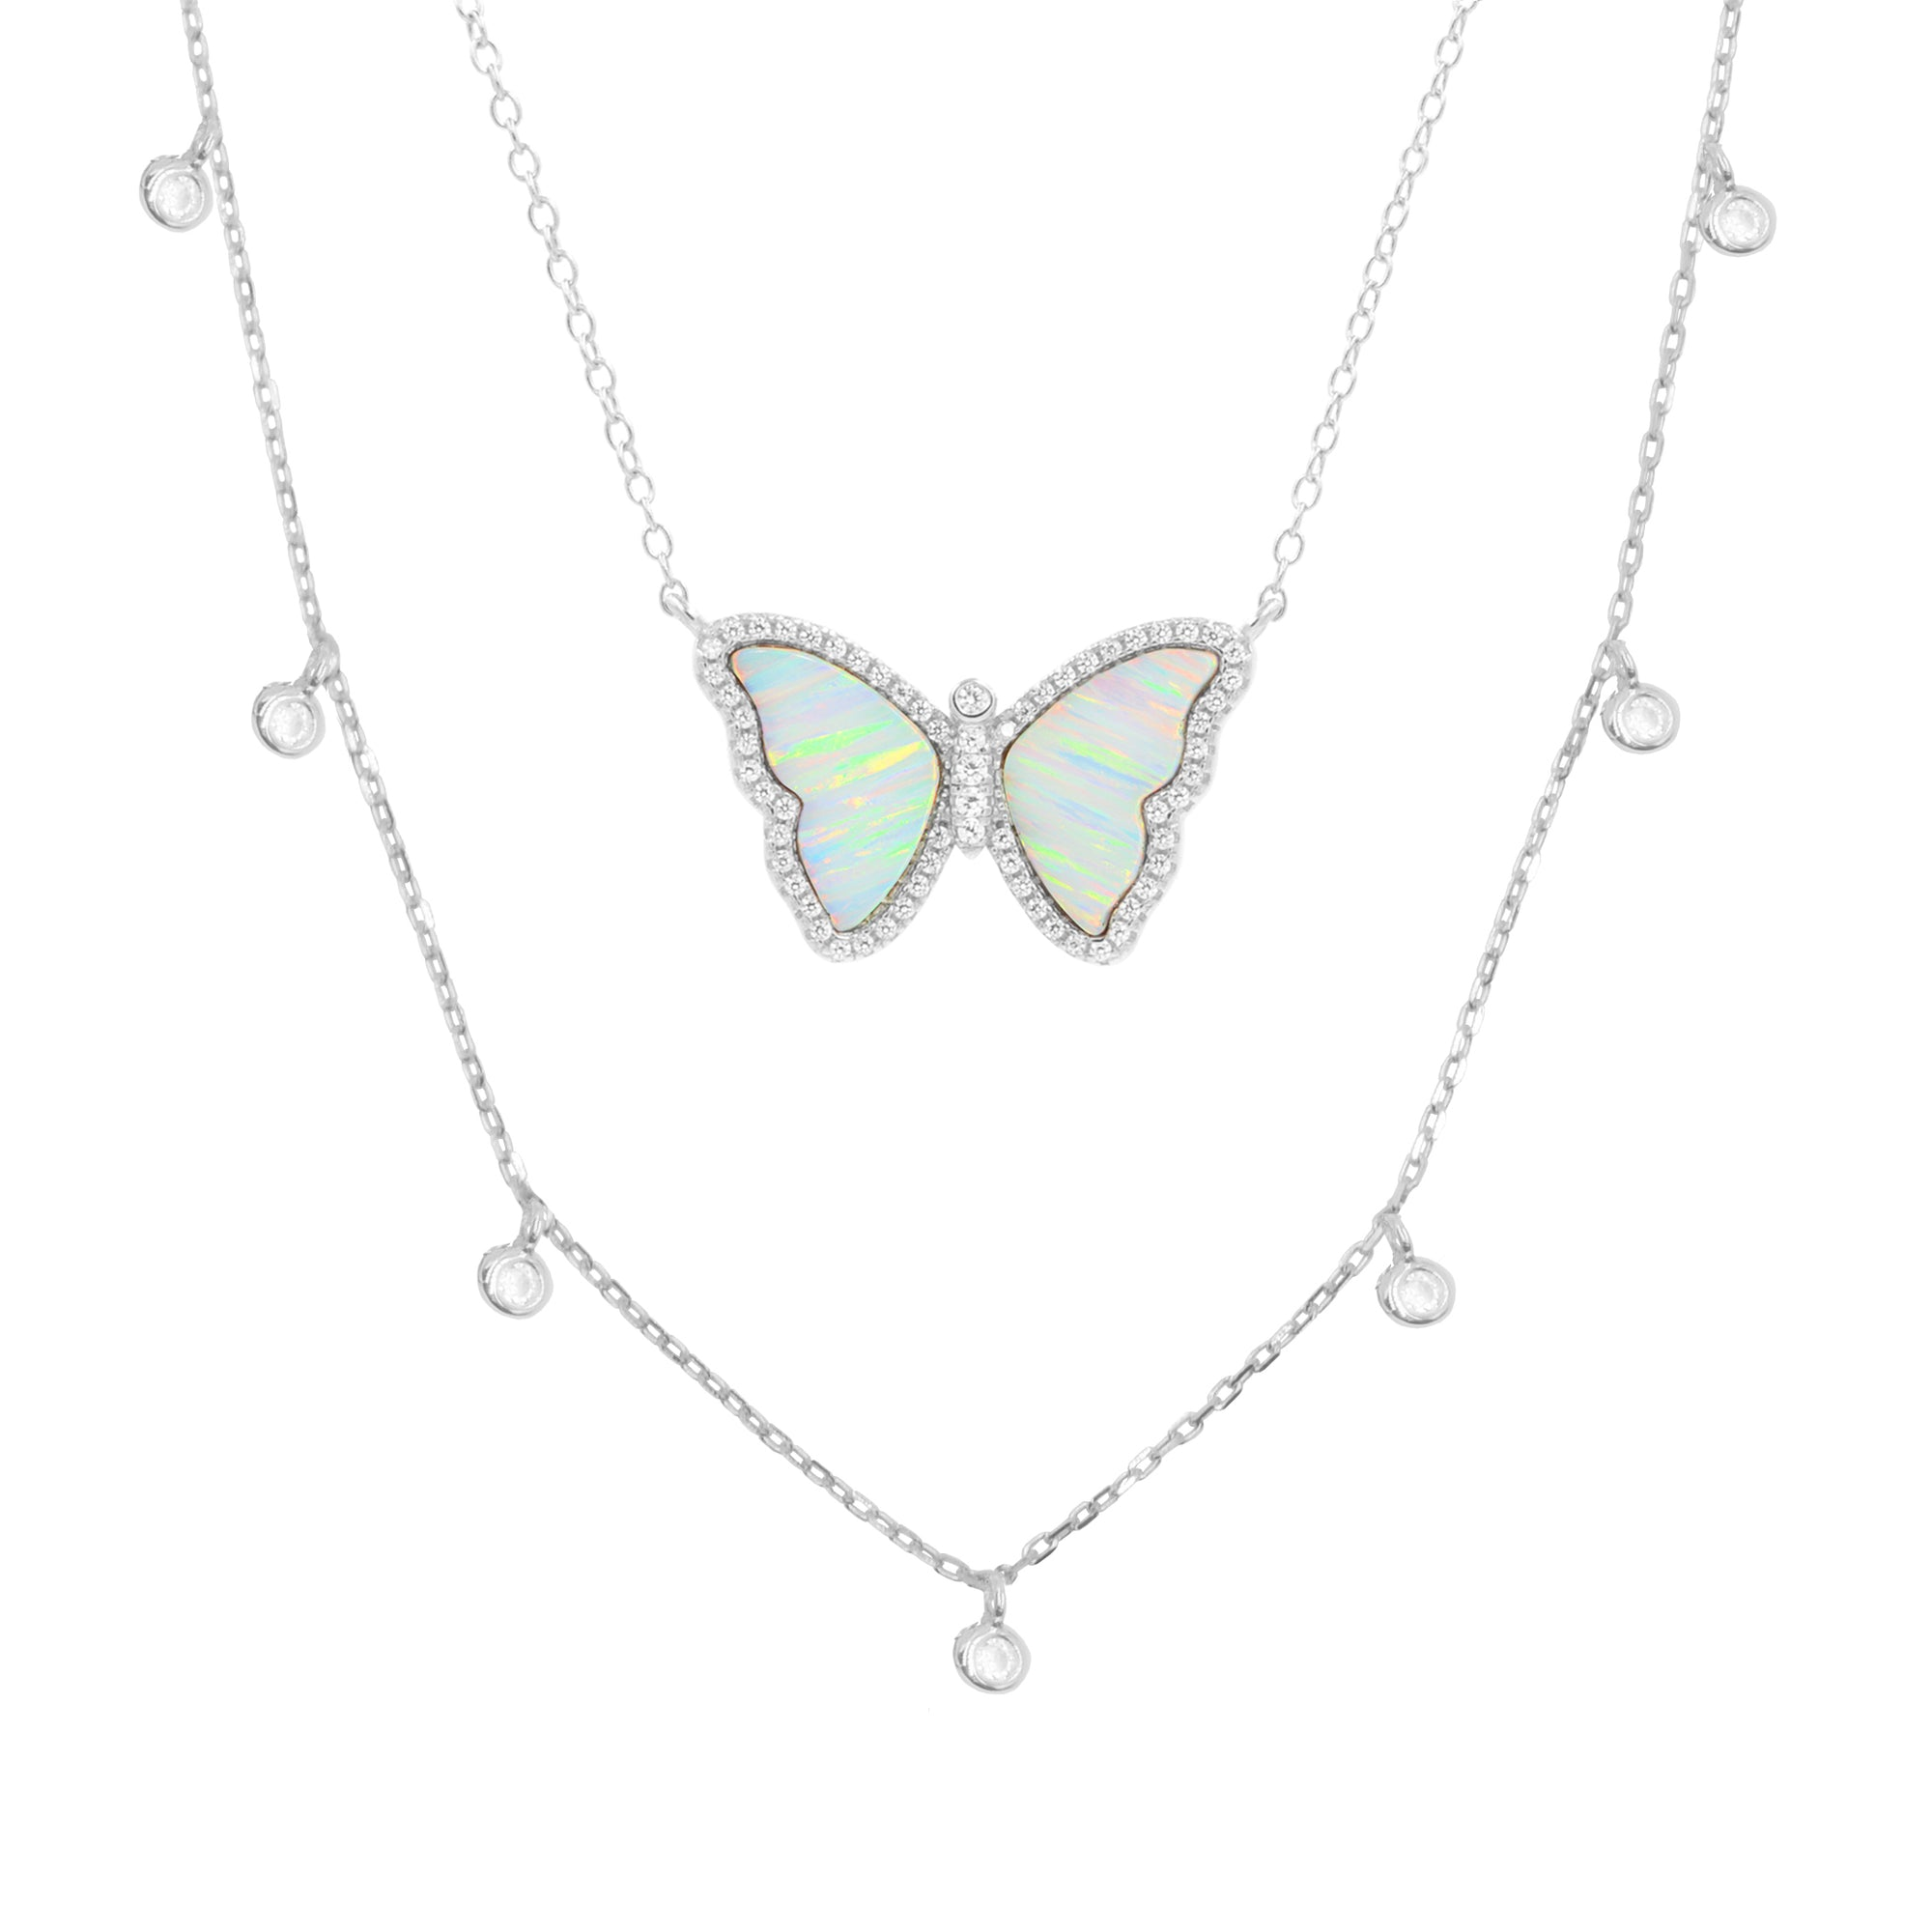 Gift Set | Opal Butterfly Necklace + Silver Choker